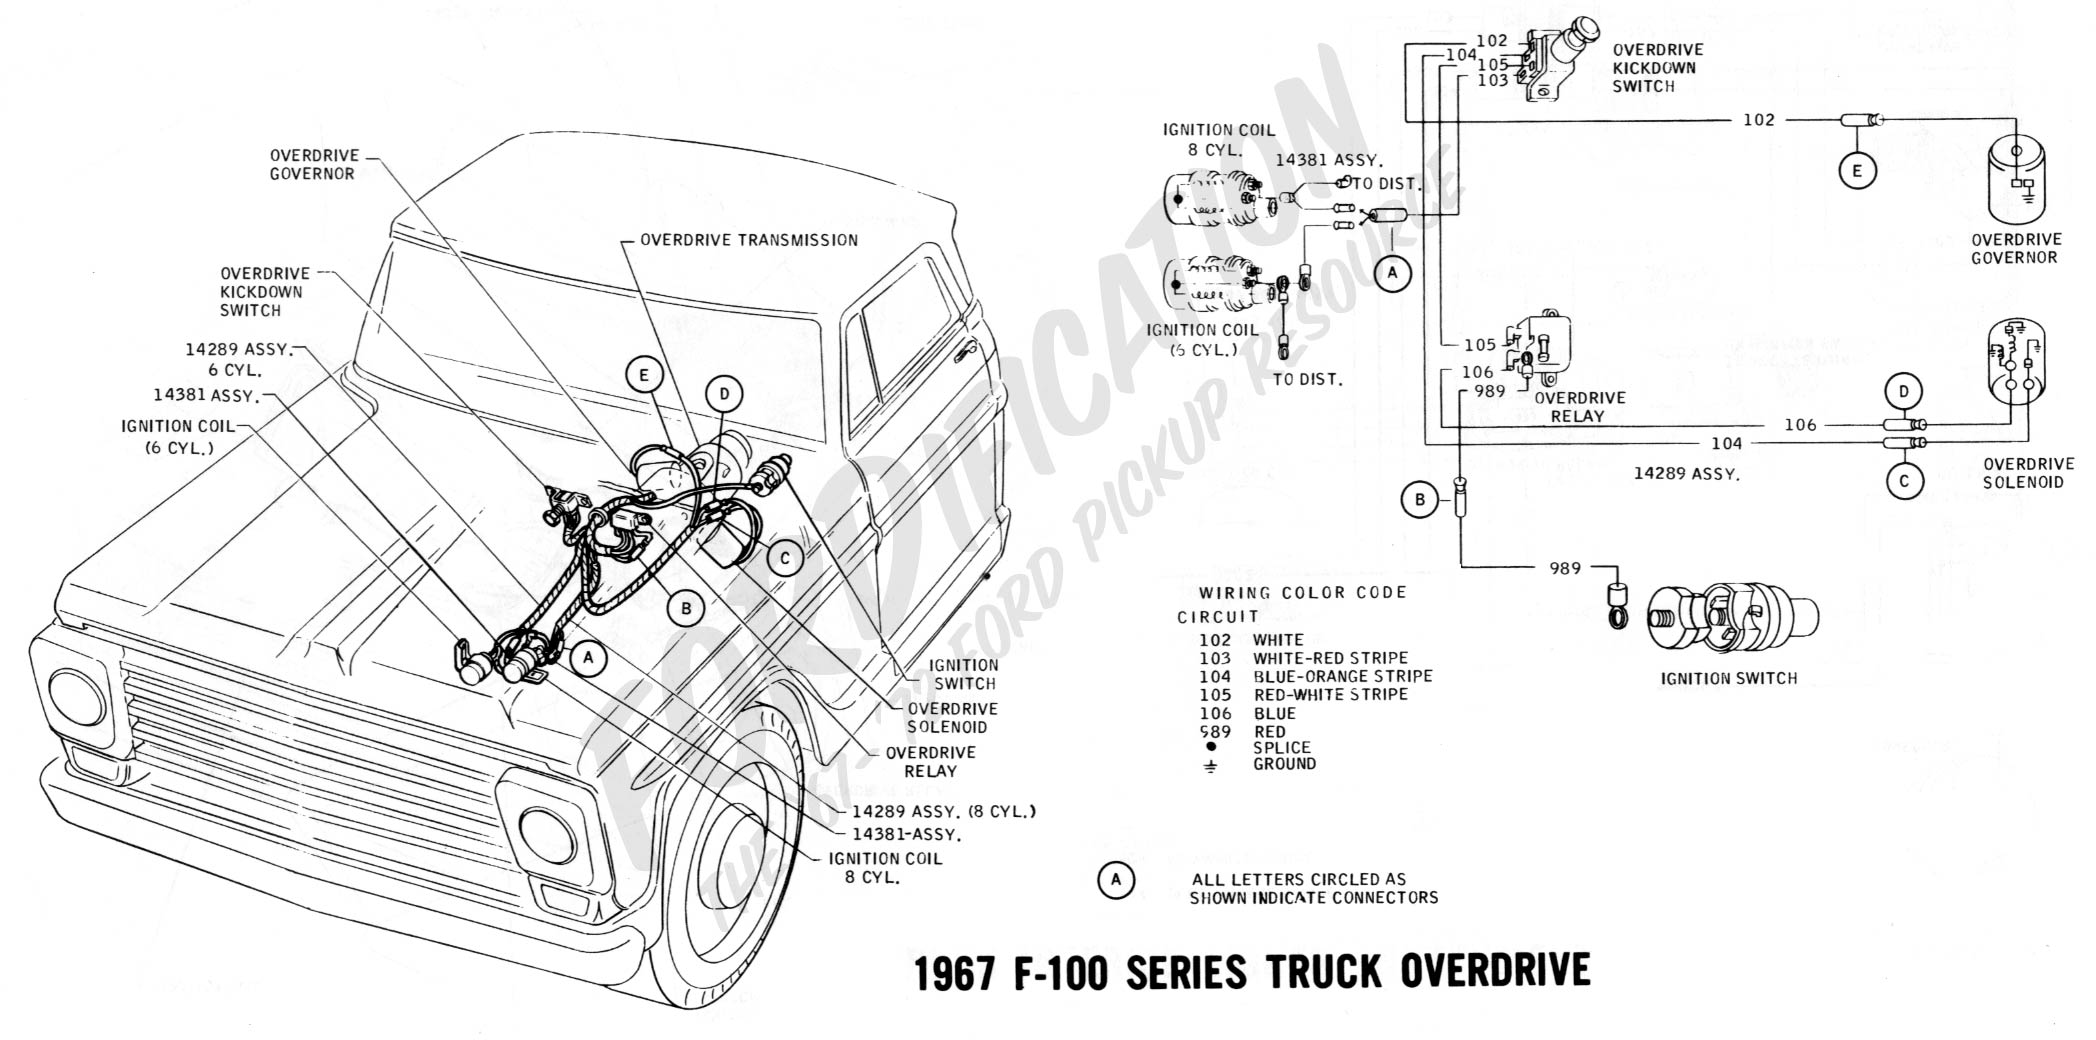 wiring 1967overdrive2 ford truck technical drawings and schematics section h wiring 1966 ford truck wiring diagram at eliteediting.co